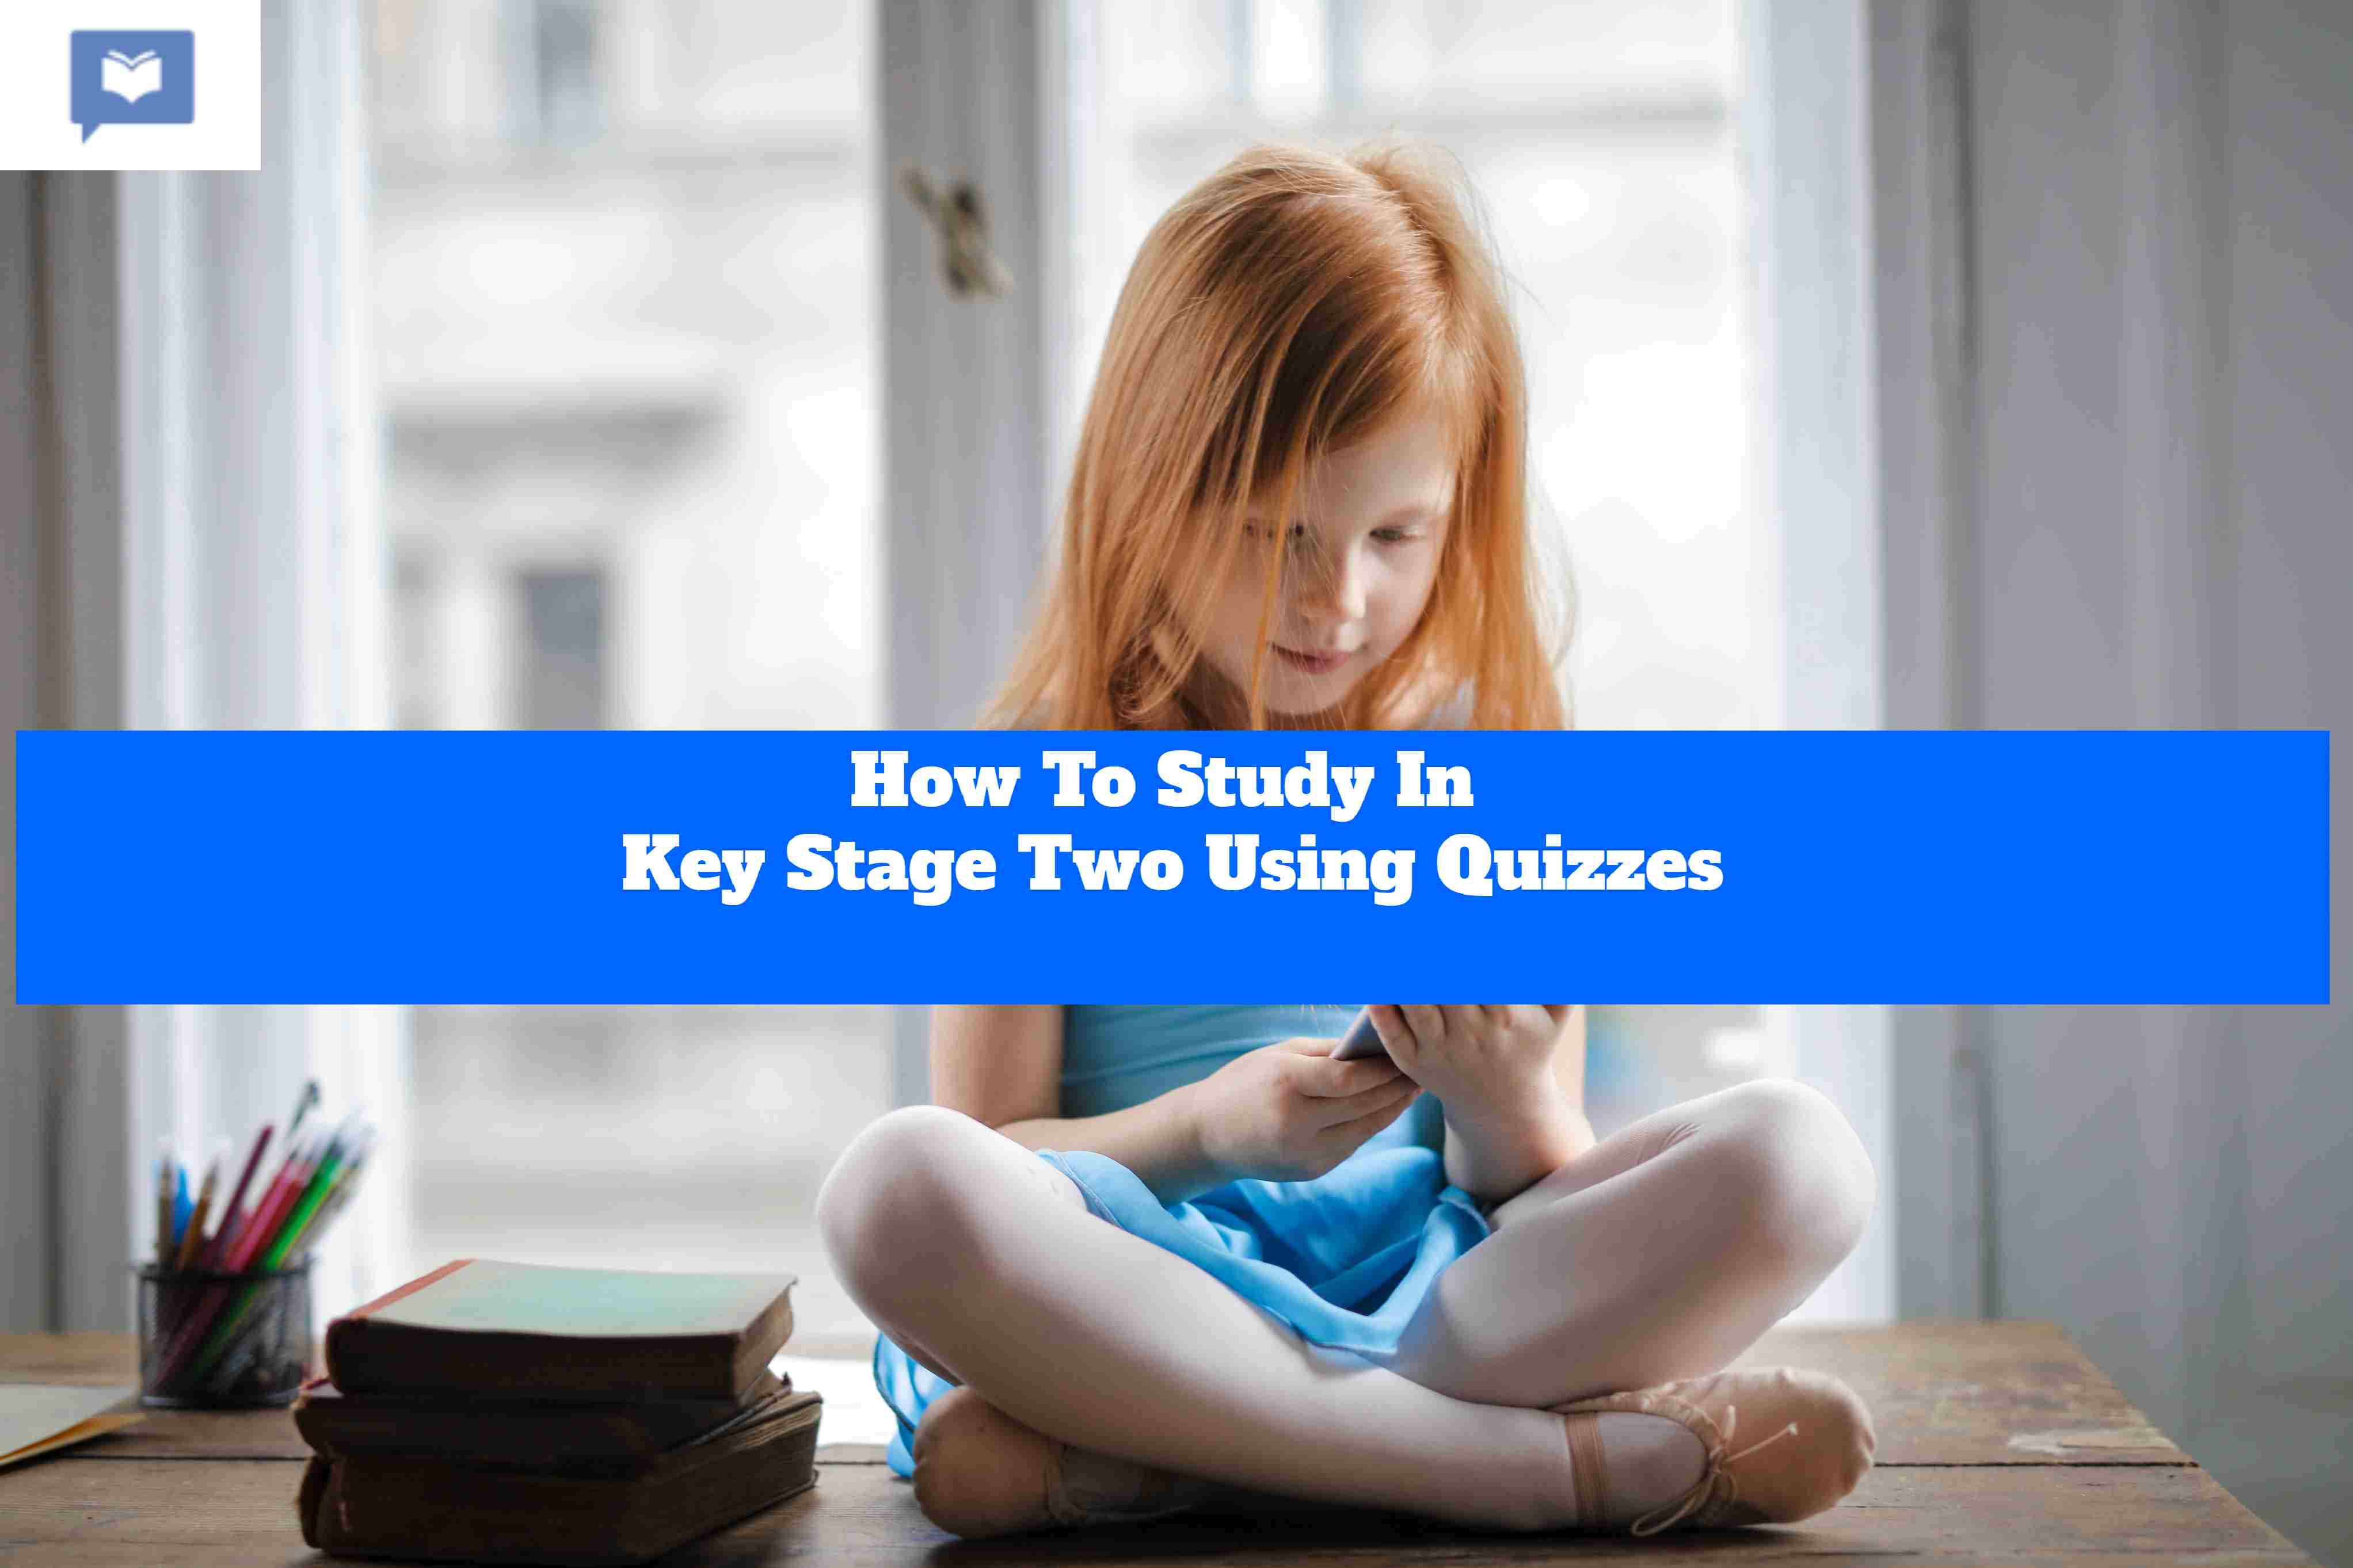 How To Study In Key Stage Two Using Quizzes